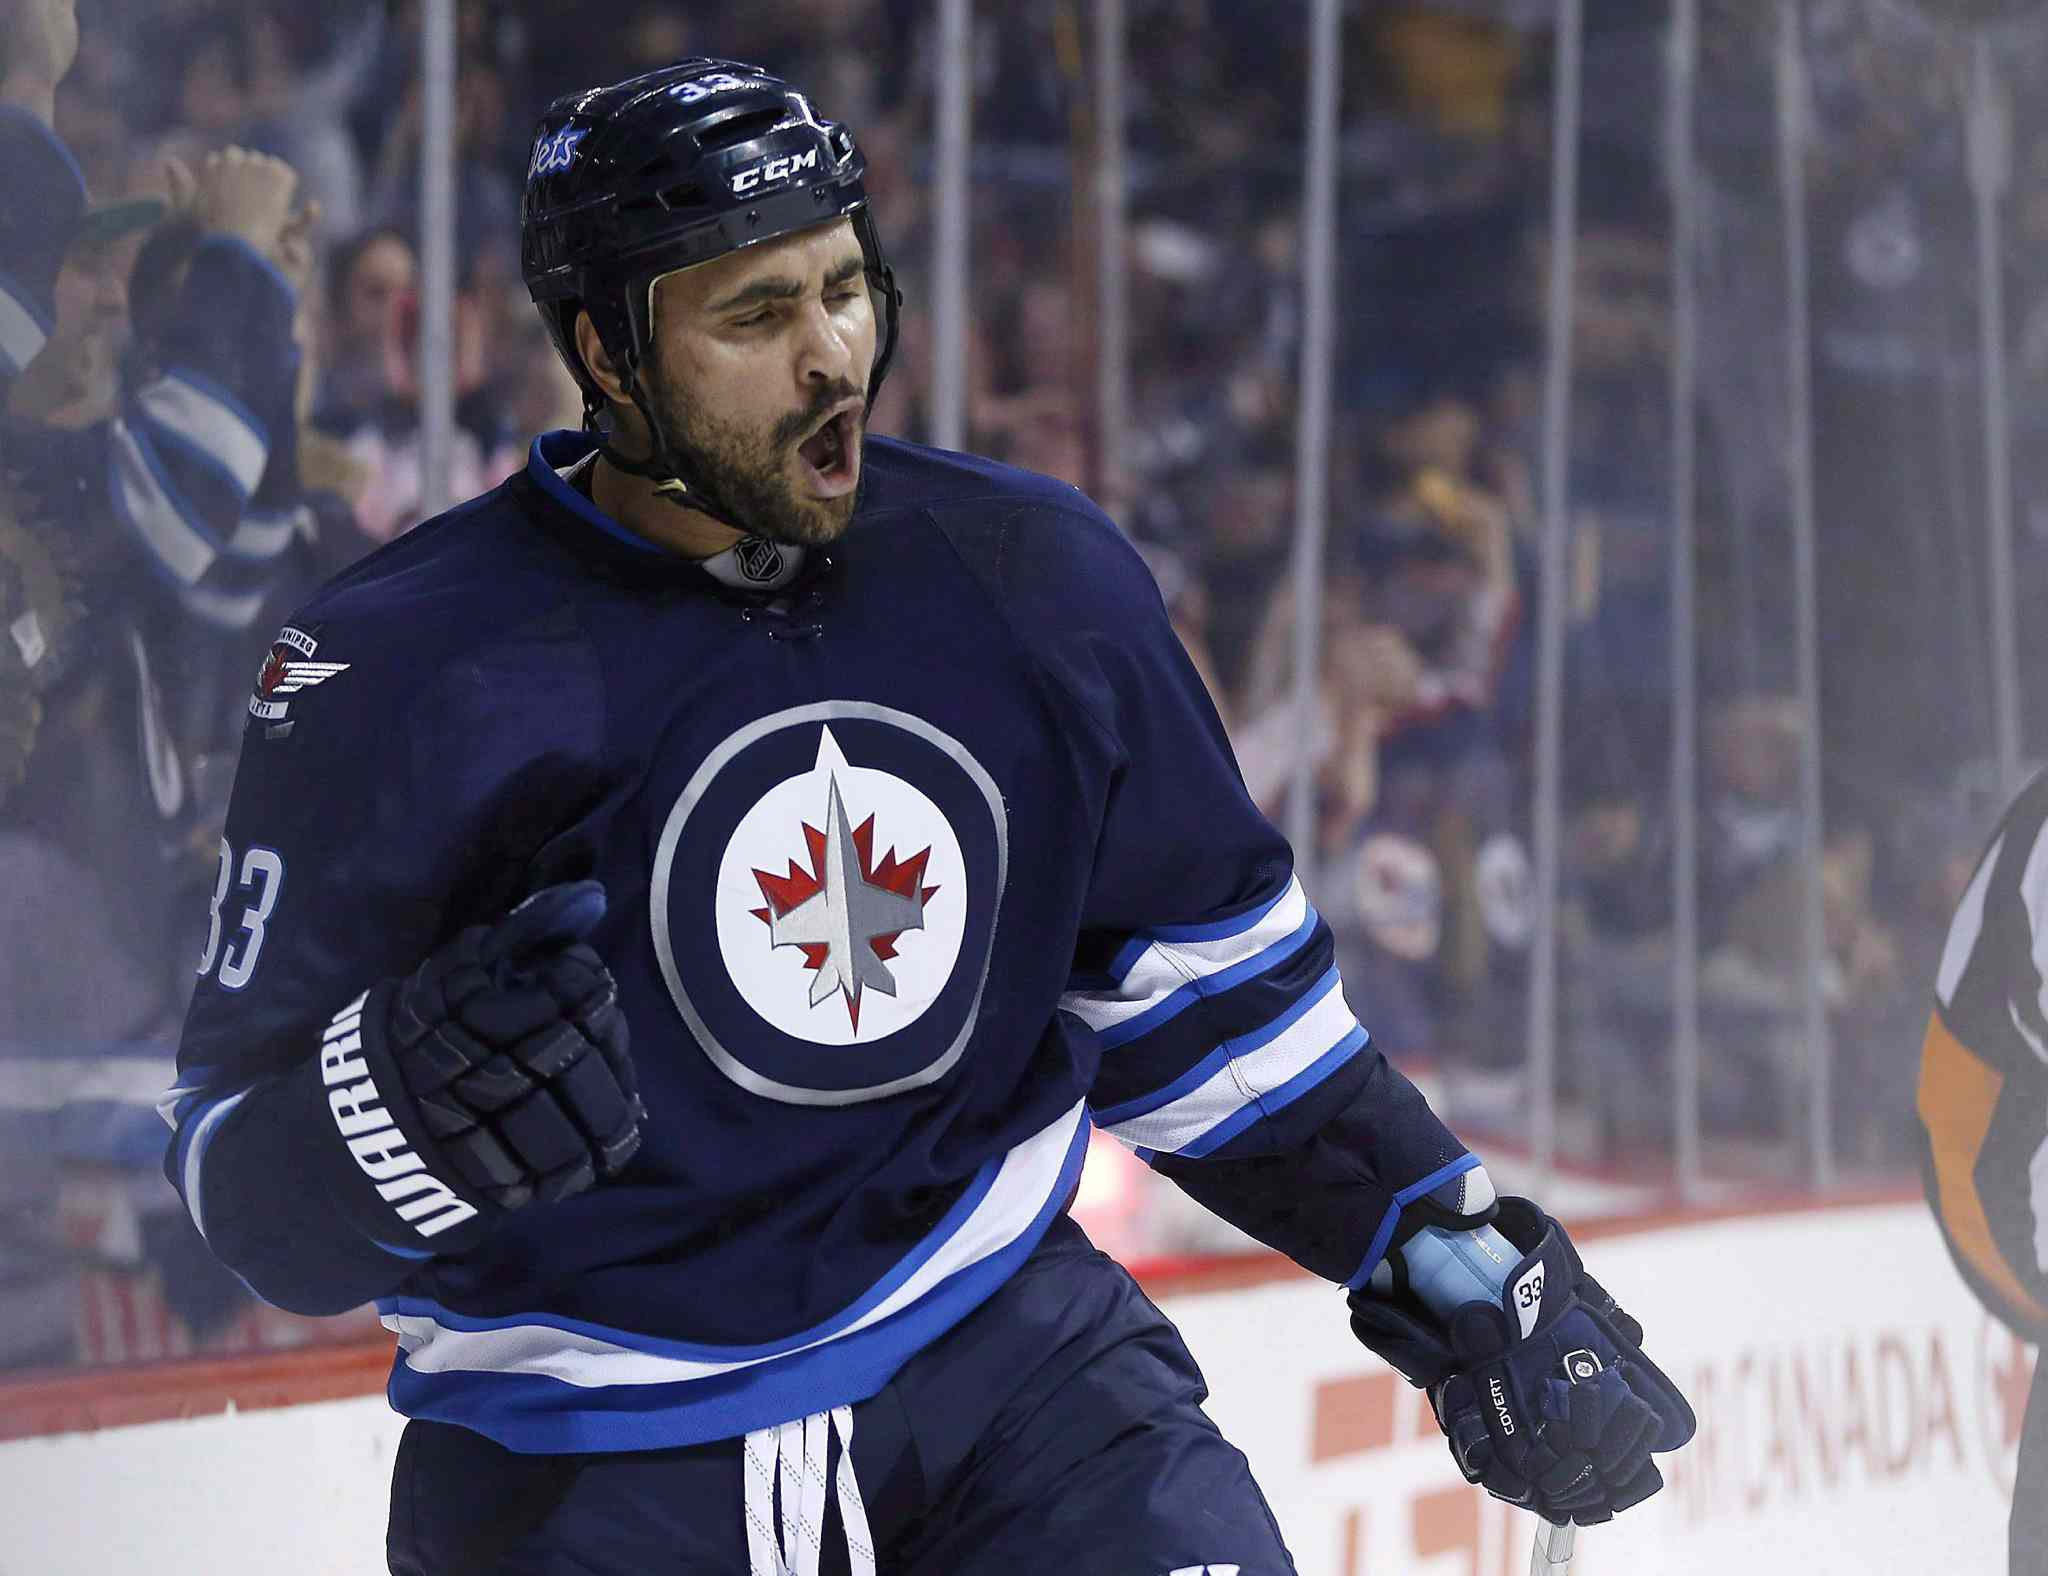 Winnipeg Jets' Dustin Byfuglien celebrates a goal against the Toronto Maple Leafs on Jan. 3.